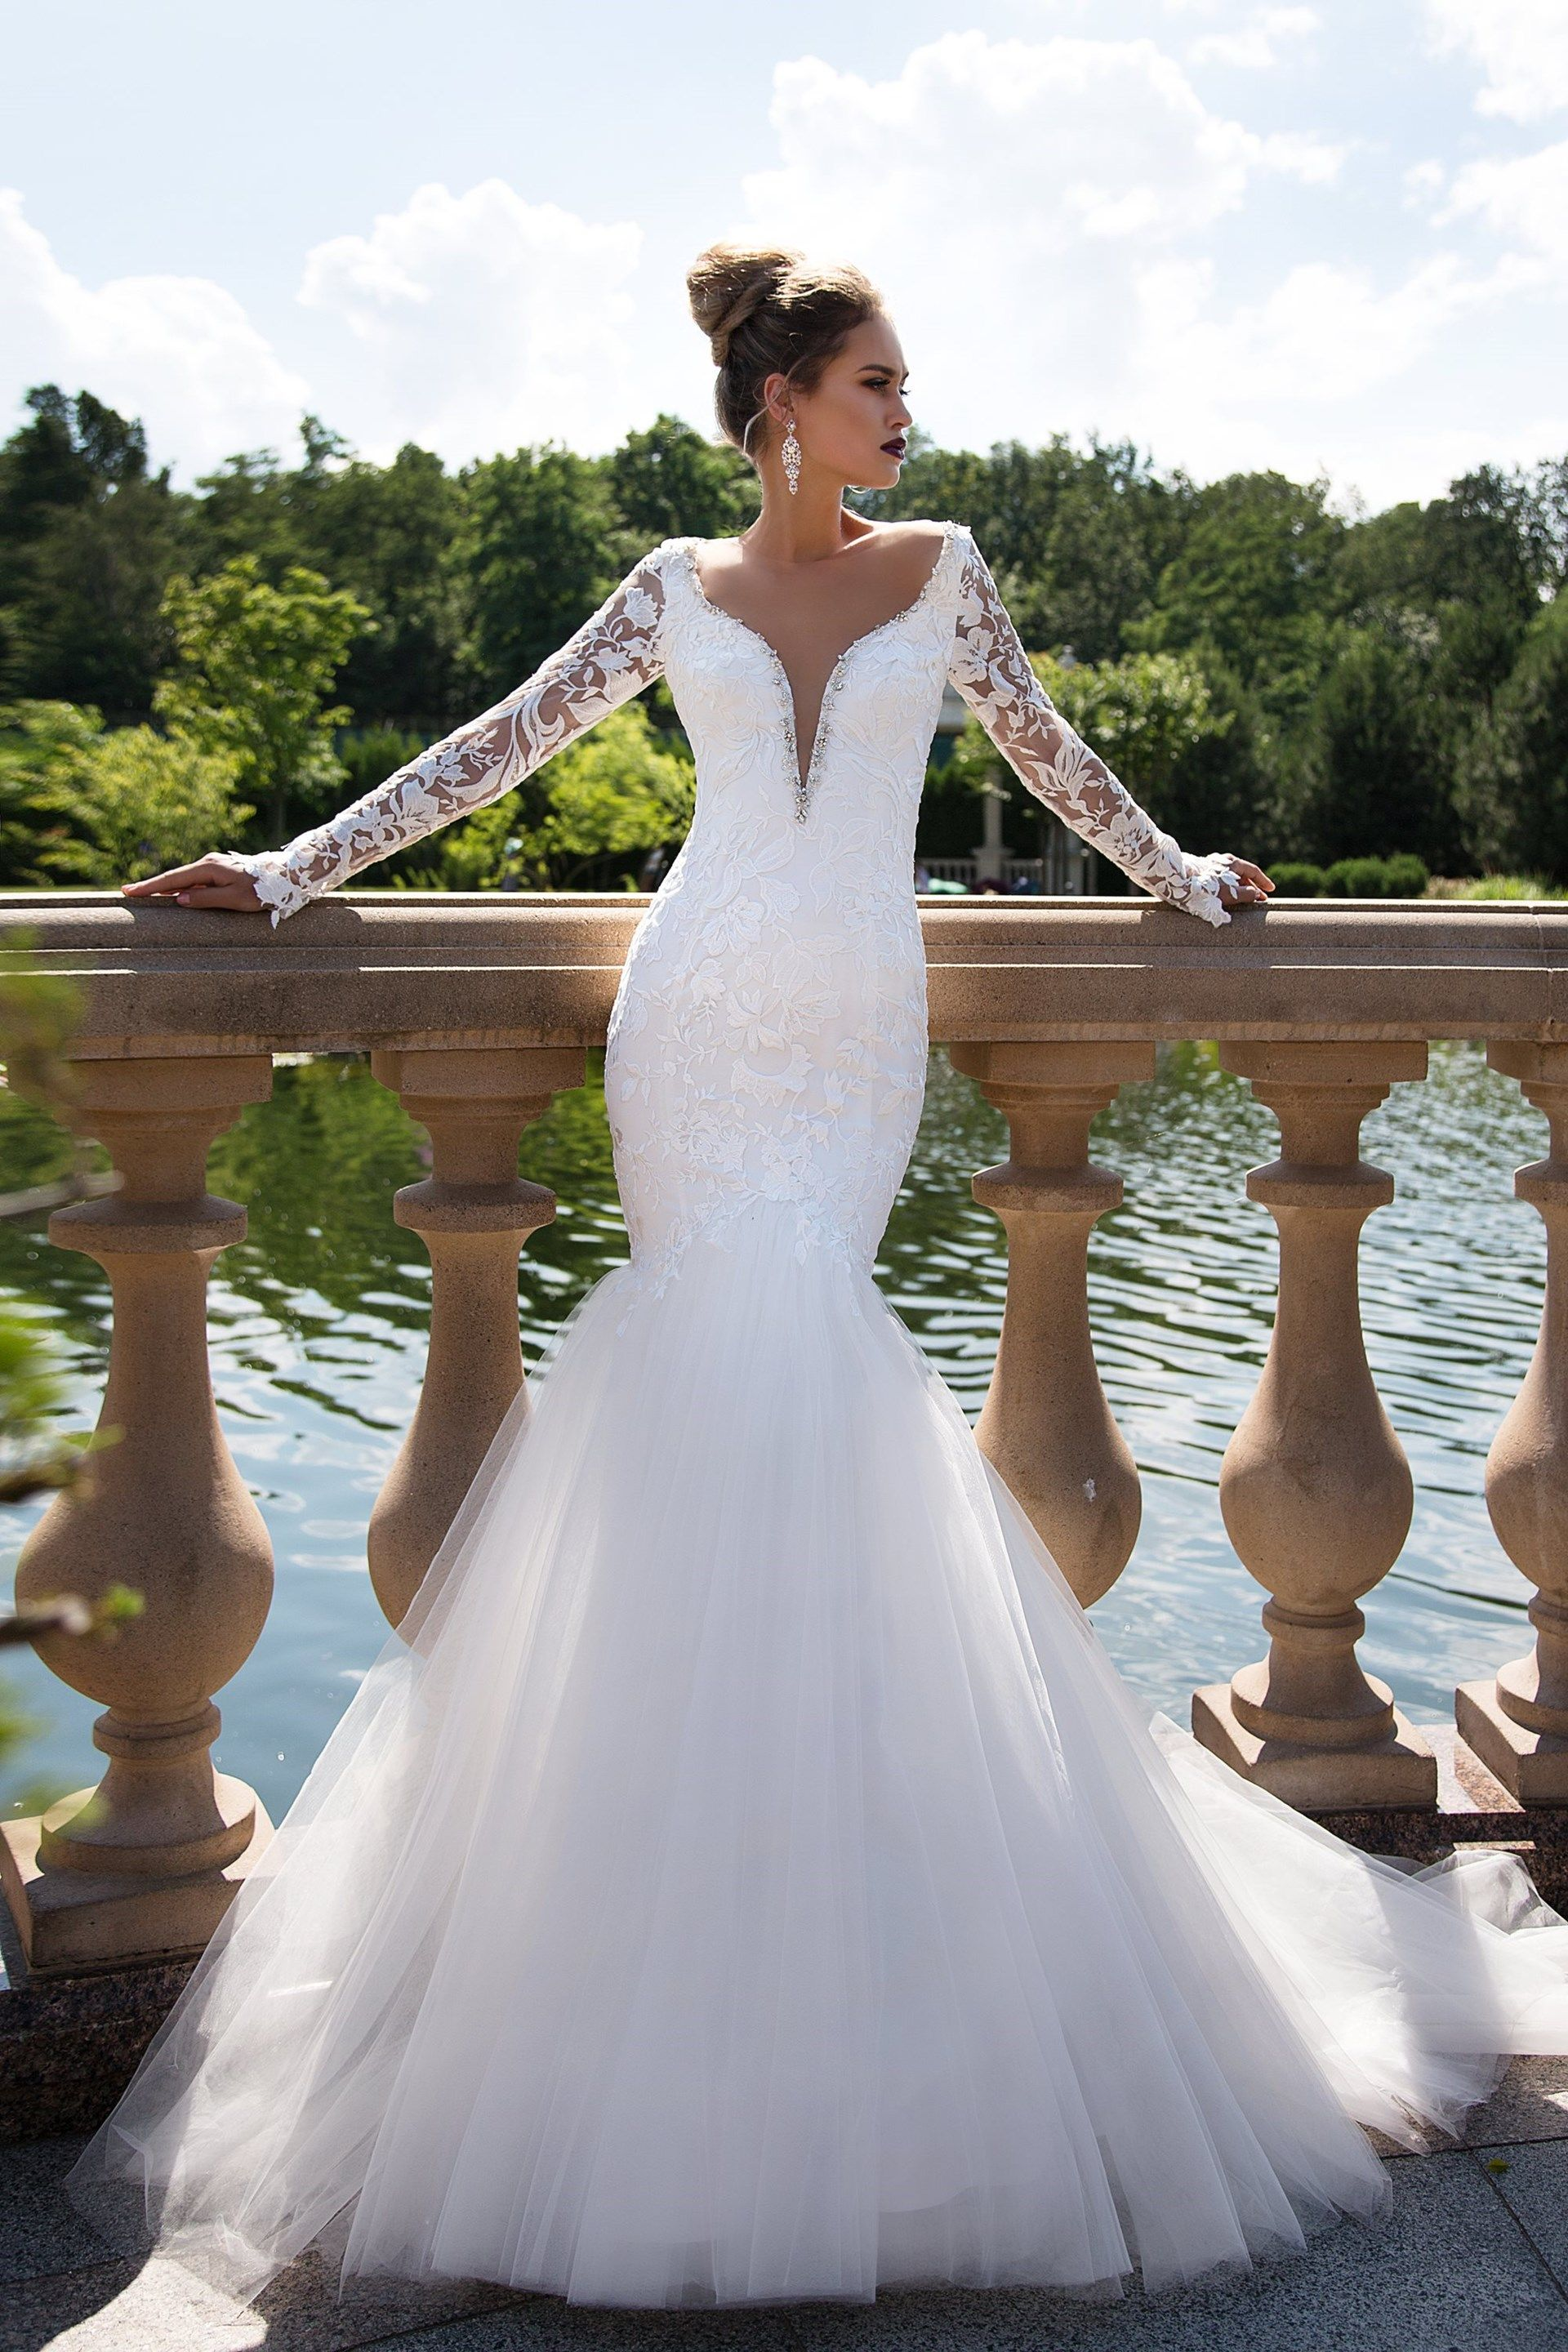 Elite wedding dresses  Wedding dresses in bulk and accessories  Collections  Pearl